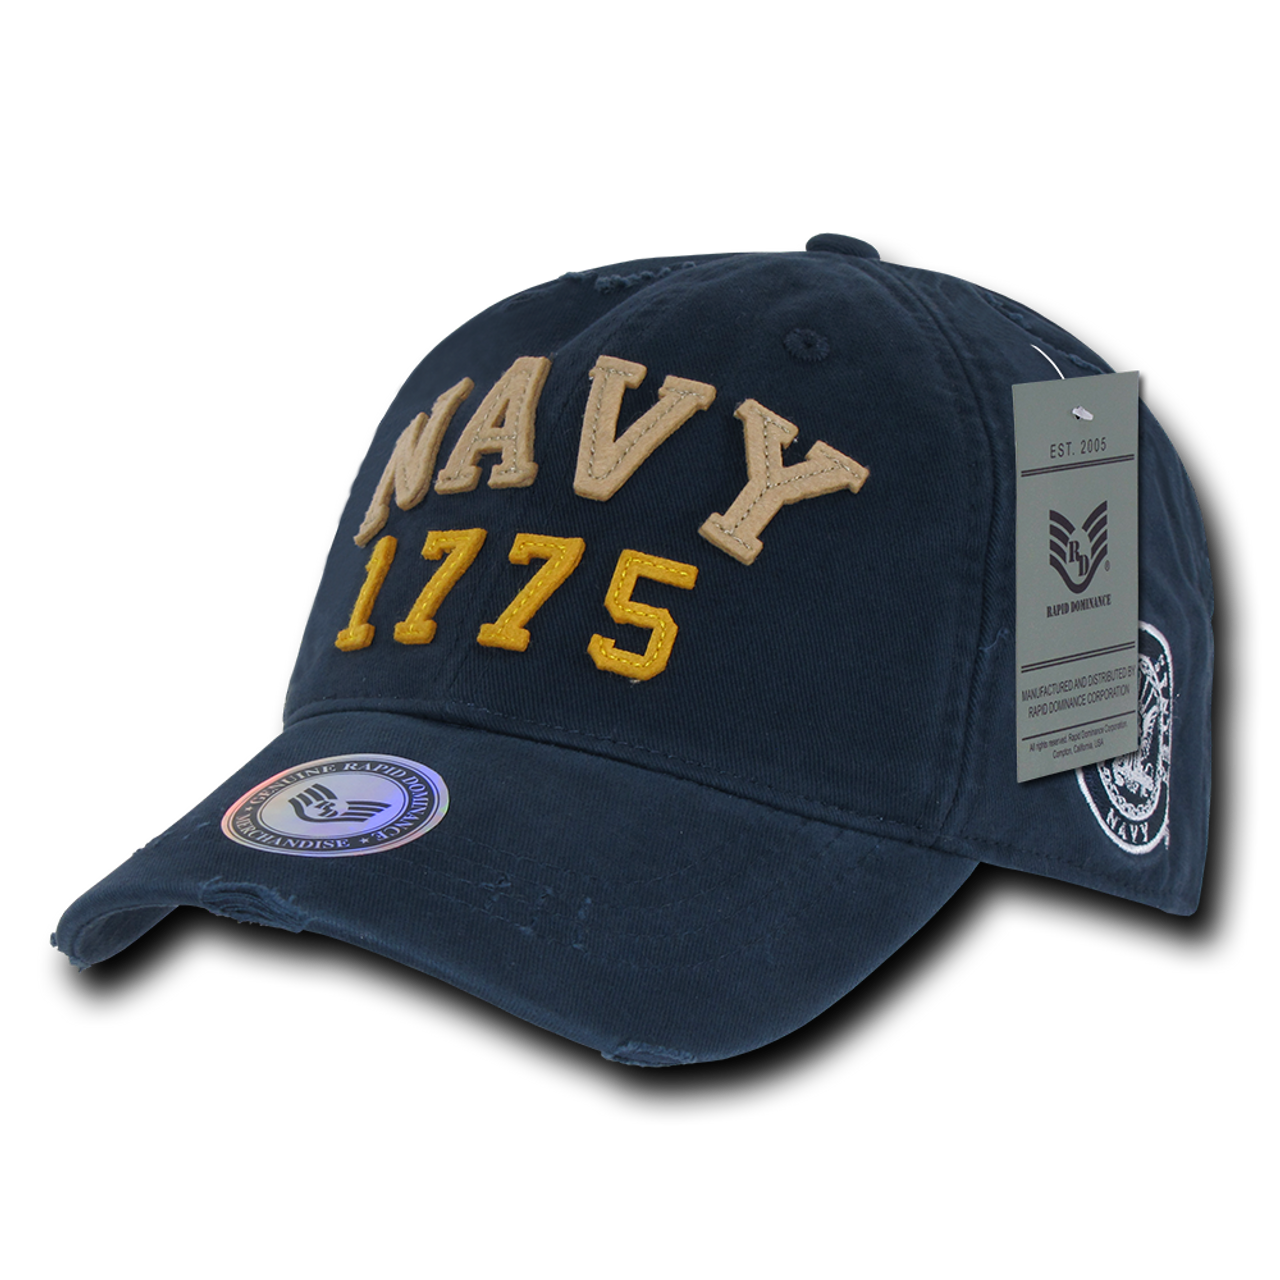 S80 - Vintage U S  Navy Cap 1775 - Relaxed Cotton - Navy Blue